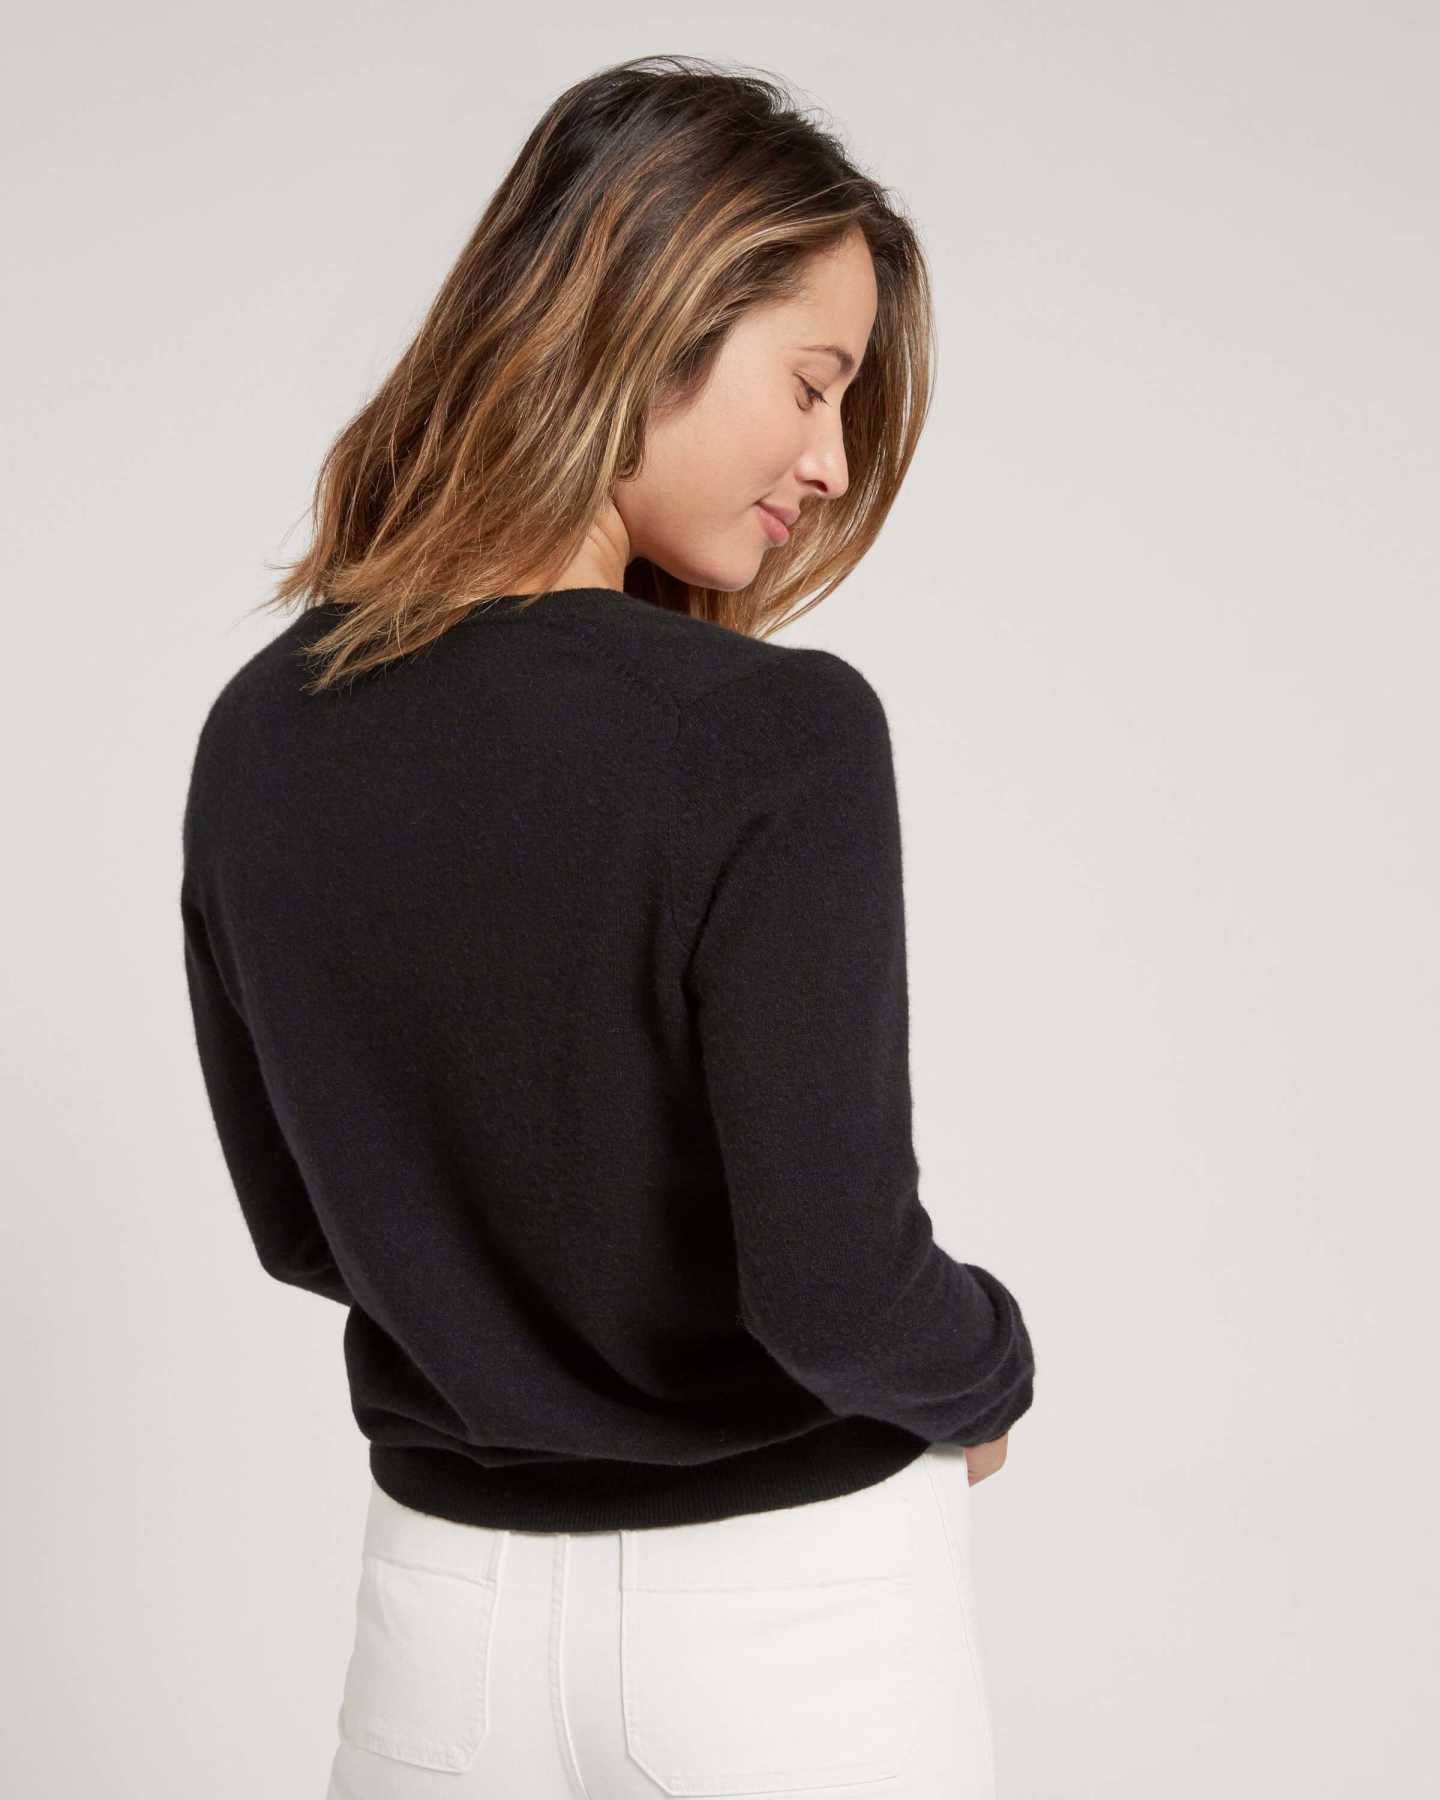 Woman wearing black cashmere v-neck sweater for women